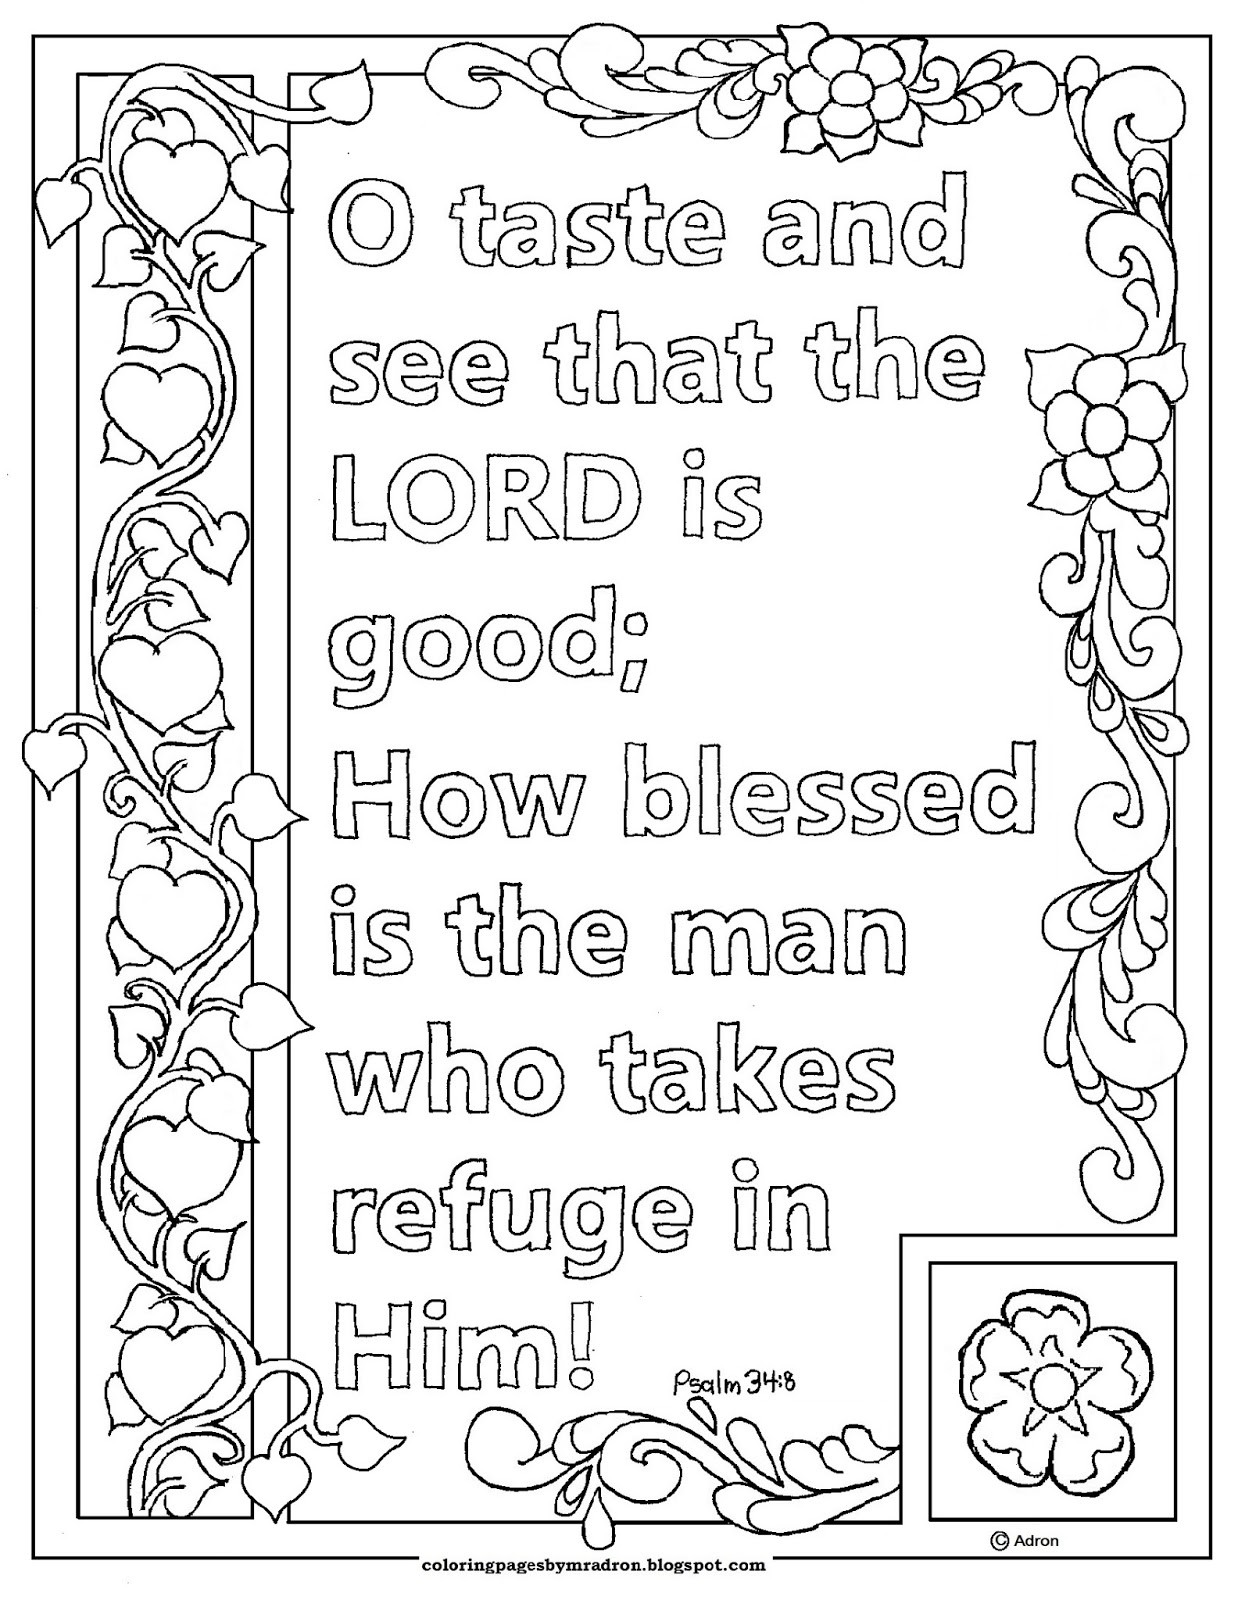 psalm 348 print and color page o taste and see that the lord is good - Psalm 8 Coloring Page